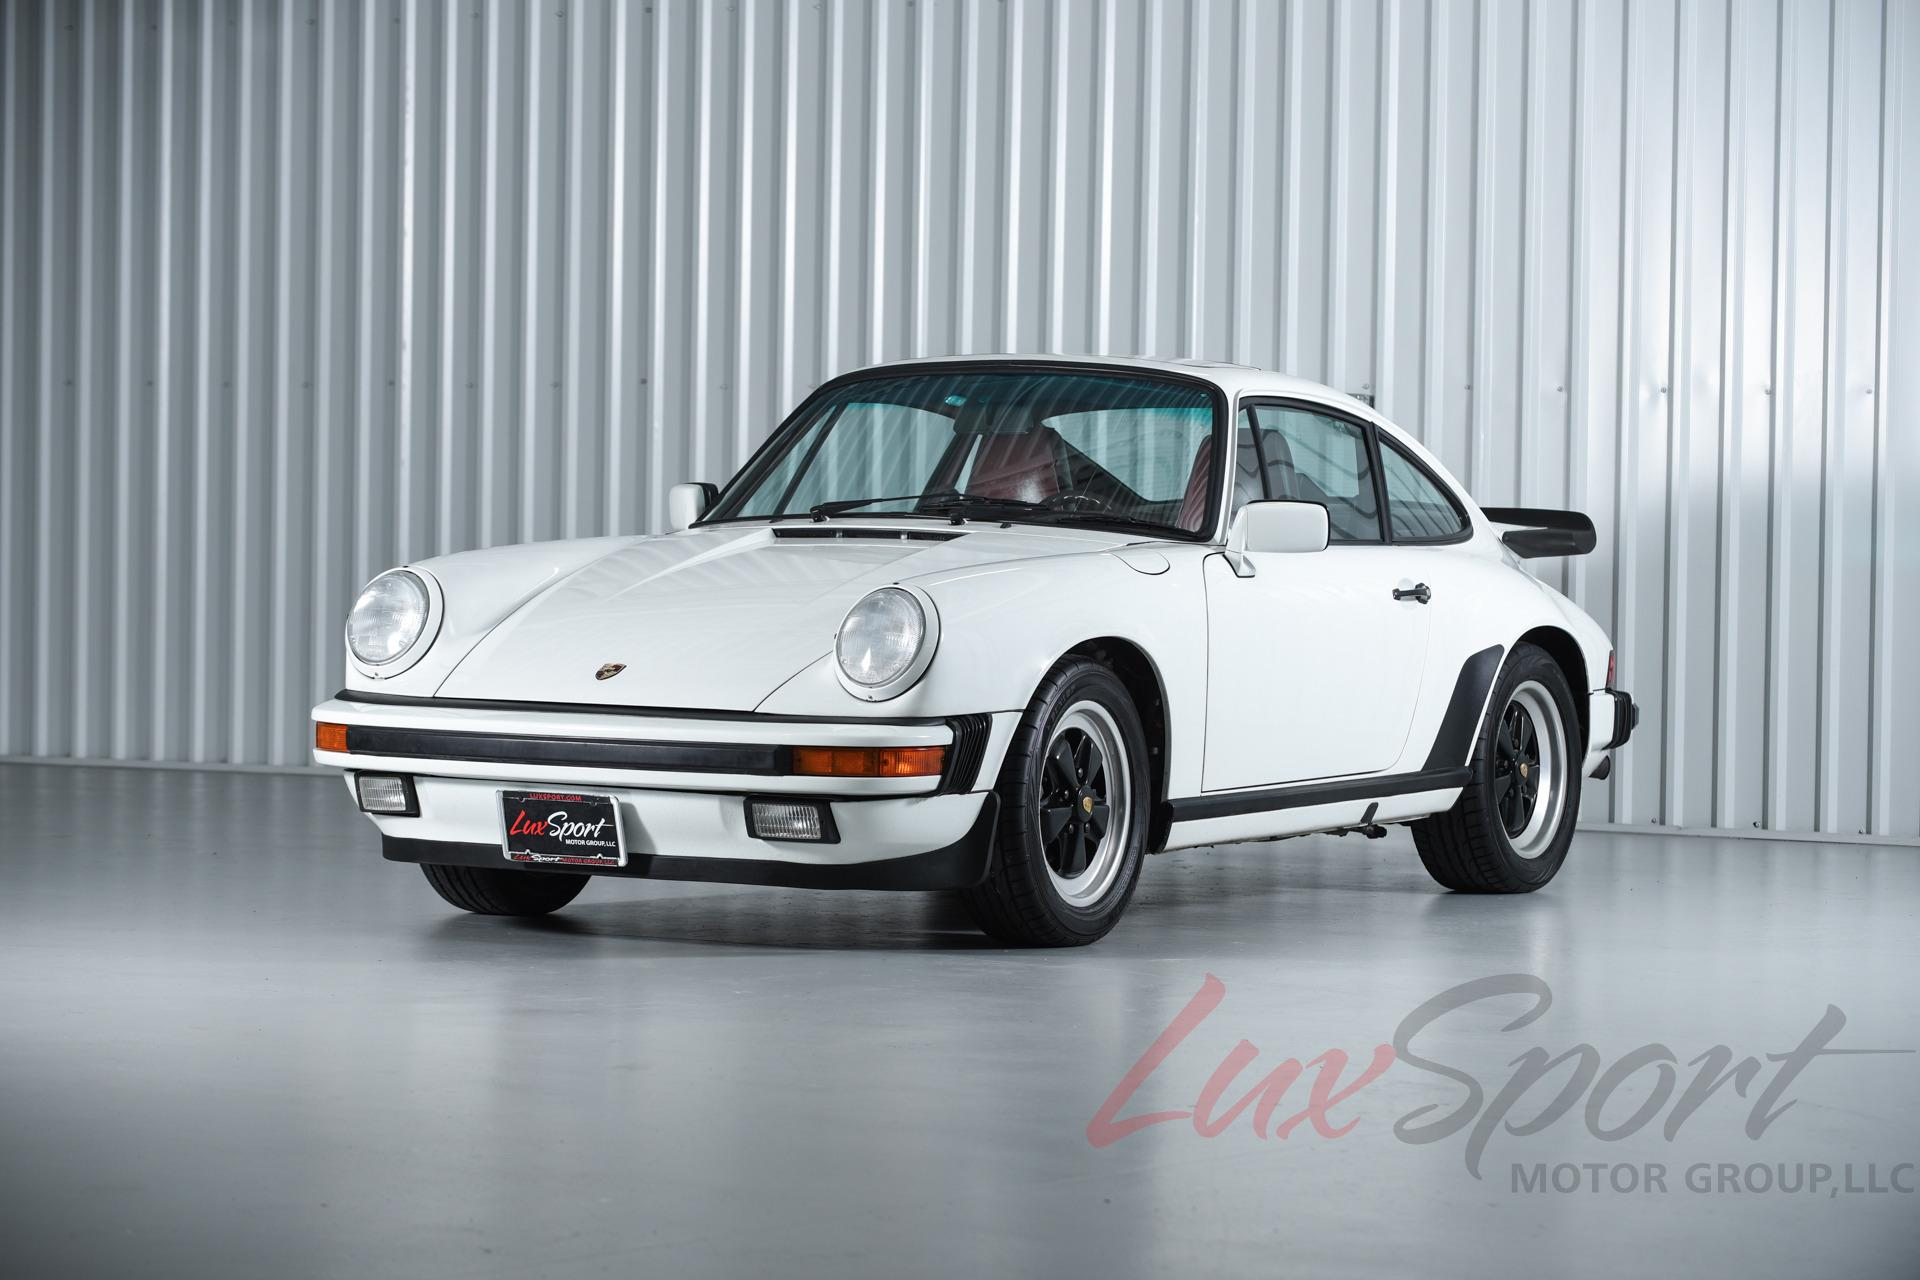 porsche 911 coupe 1987 white for sale wp0ab0914hs120295 1987 porsche 911 carrera 3 2 coupe. Black Bedroom Furniture Sets. Home Design Ideas